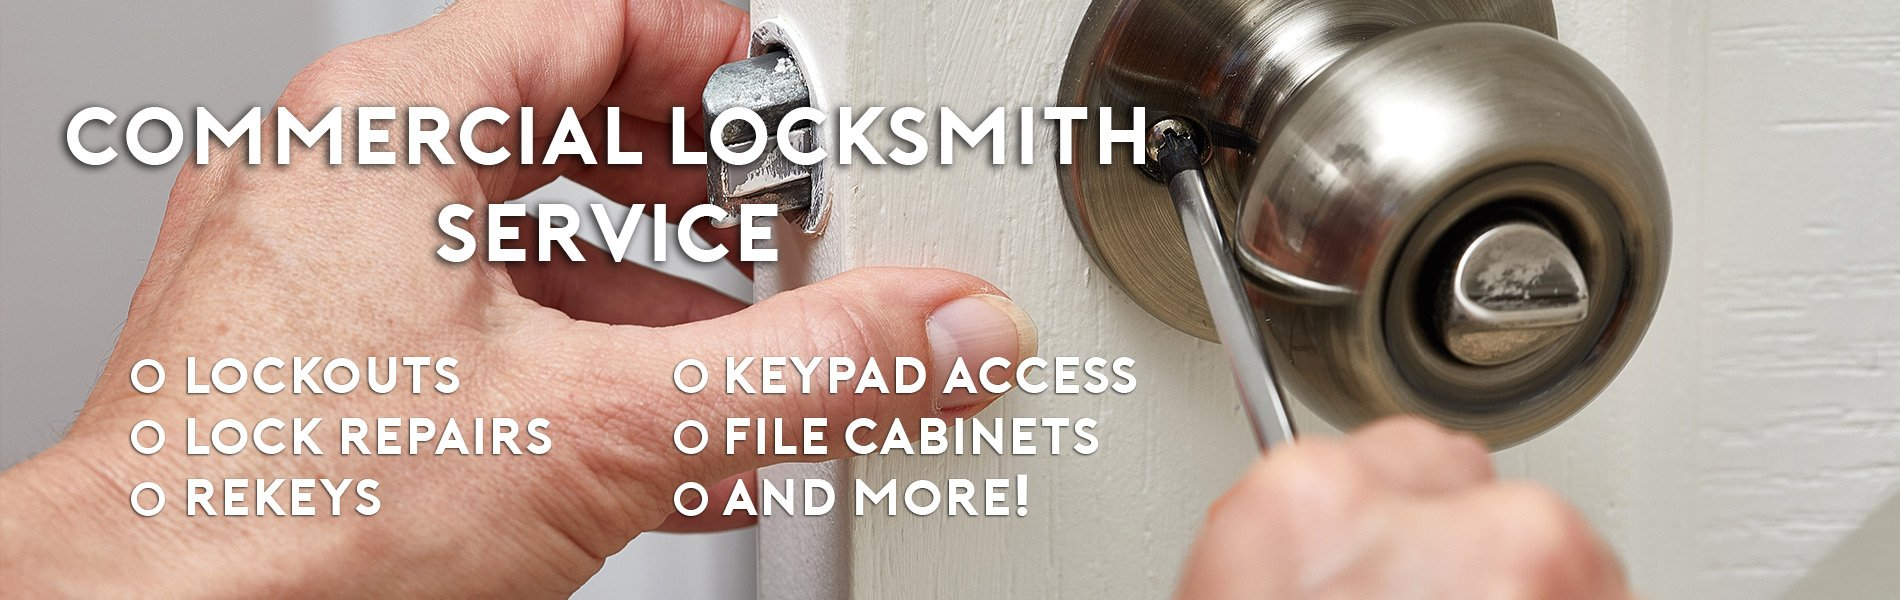 City Locksmith Shop Brooklyn, NY 718-489-9806